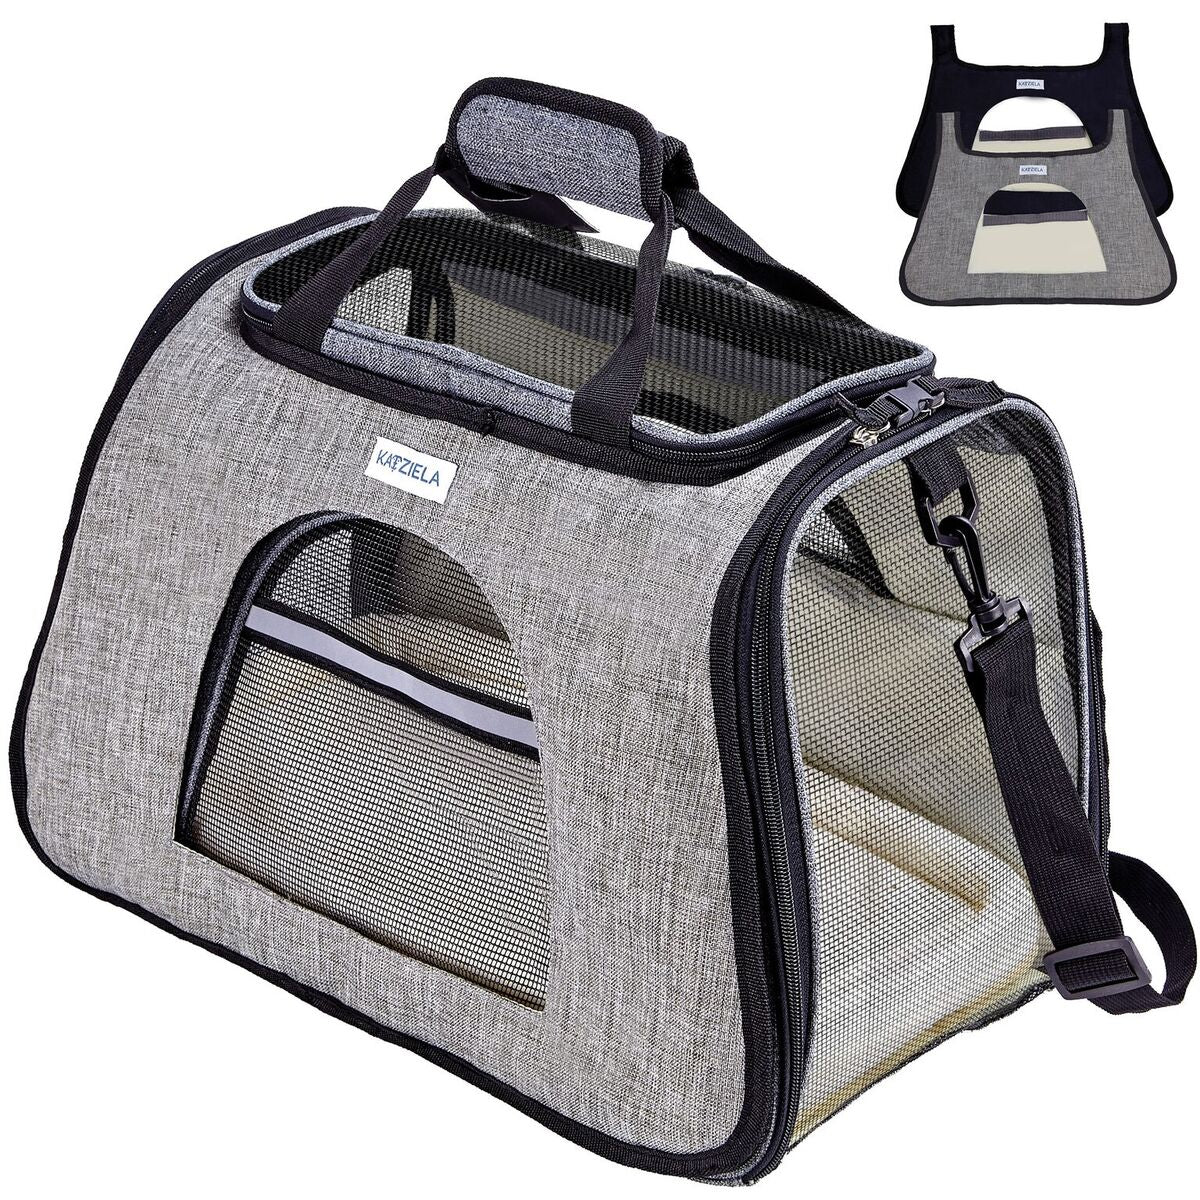 Chameleon Commuter Soft Carrier